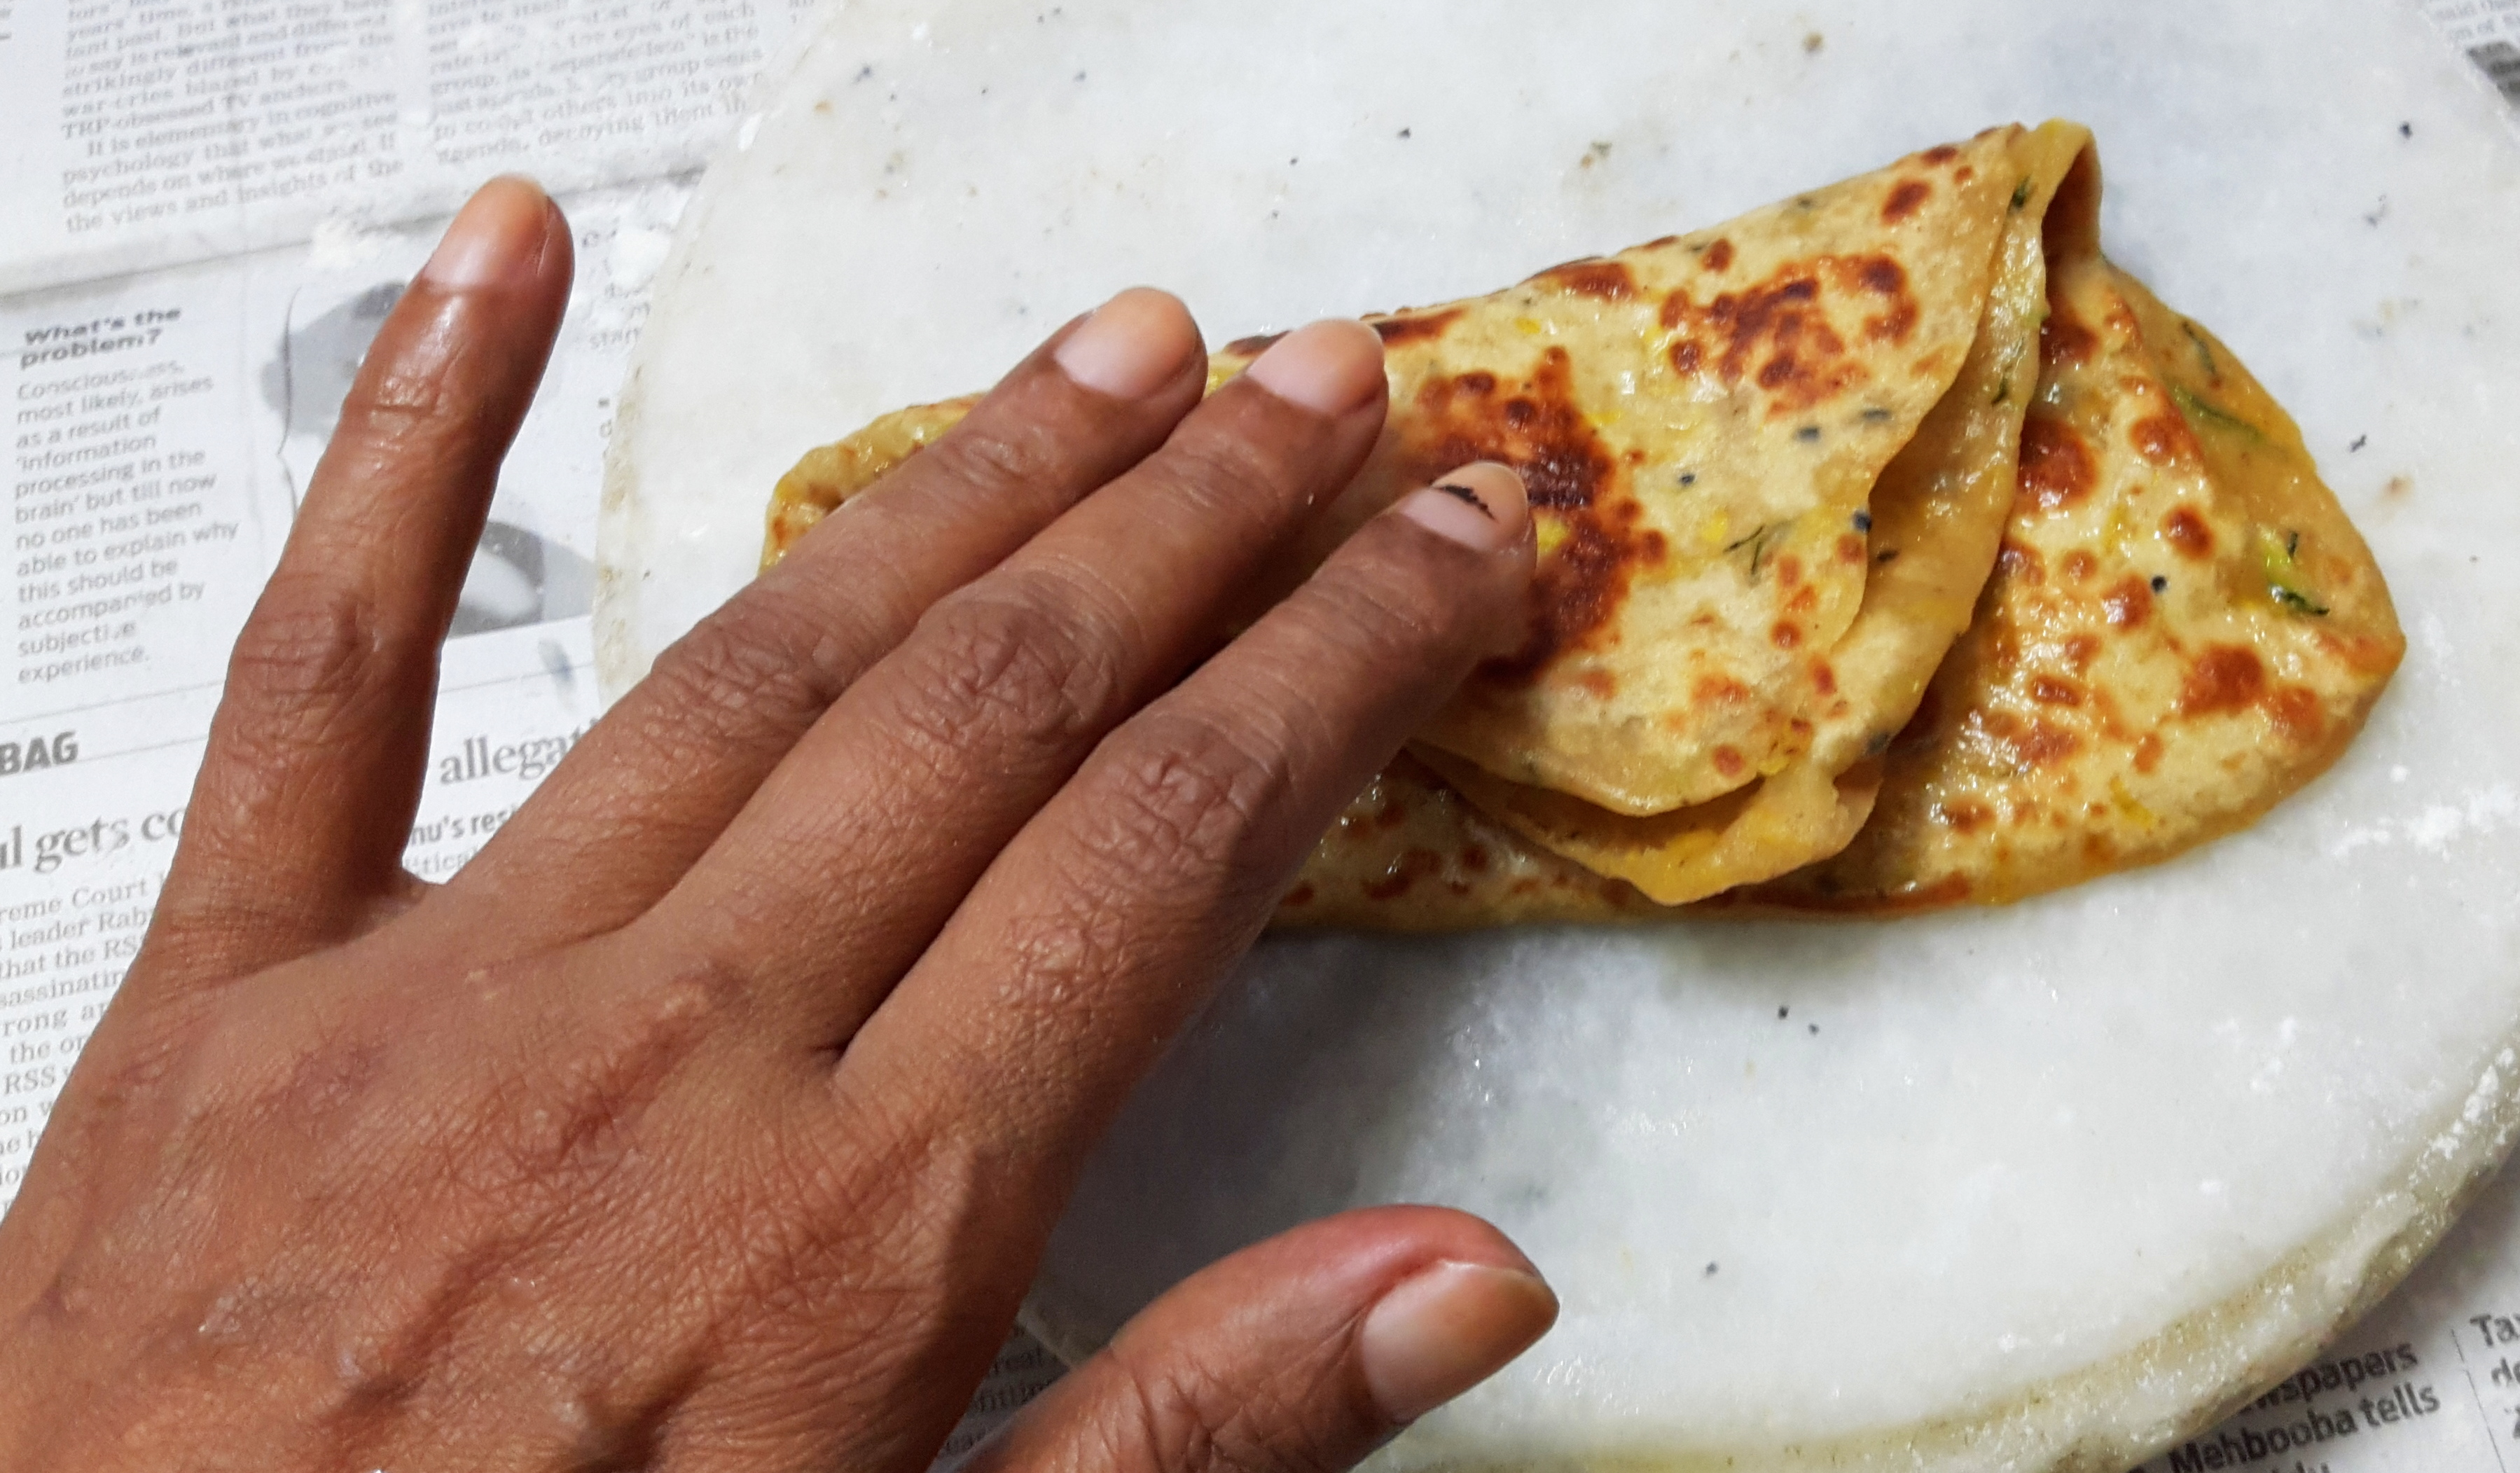 Clapping the paratha